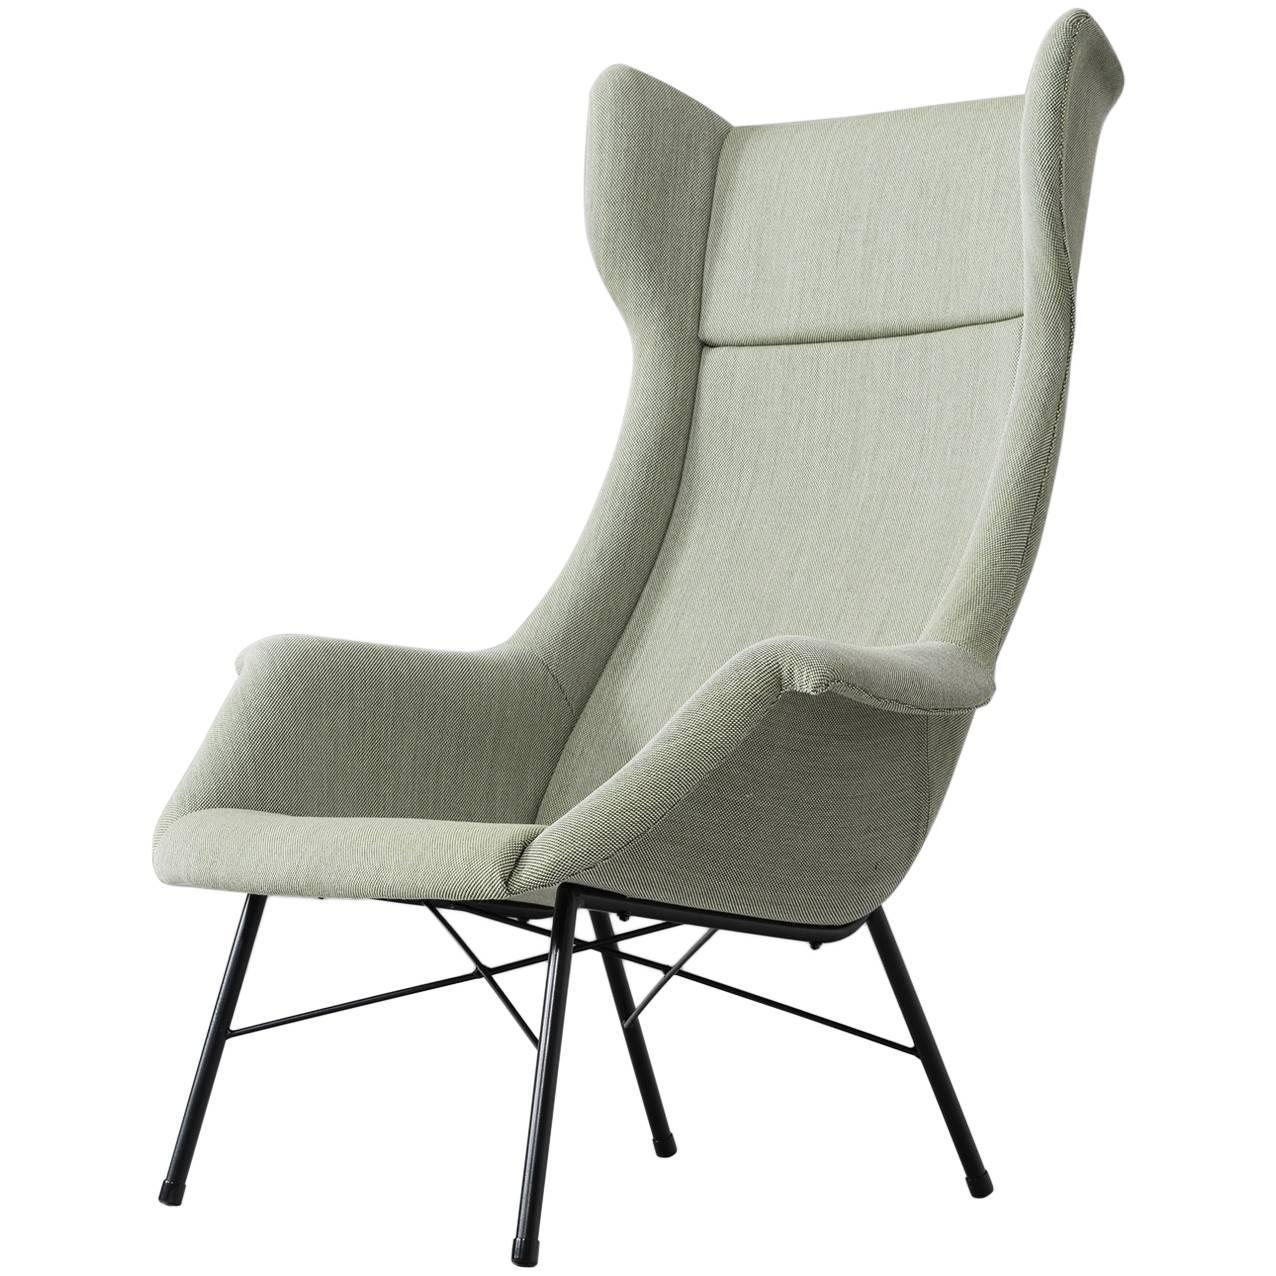 Mid century reupholstered high back lounge chair for sale for Reupholstered furniture for sale